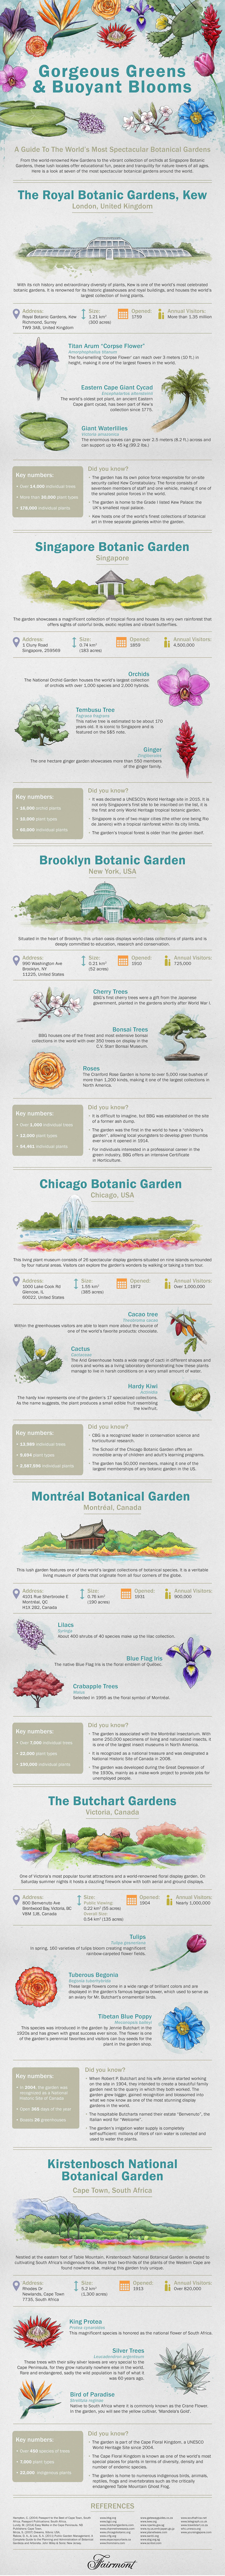 A Guide to the World's Best Botanical Gardens (InfoGraphic)